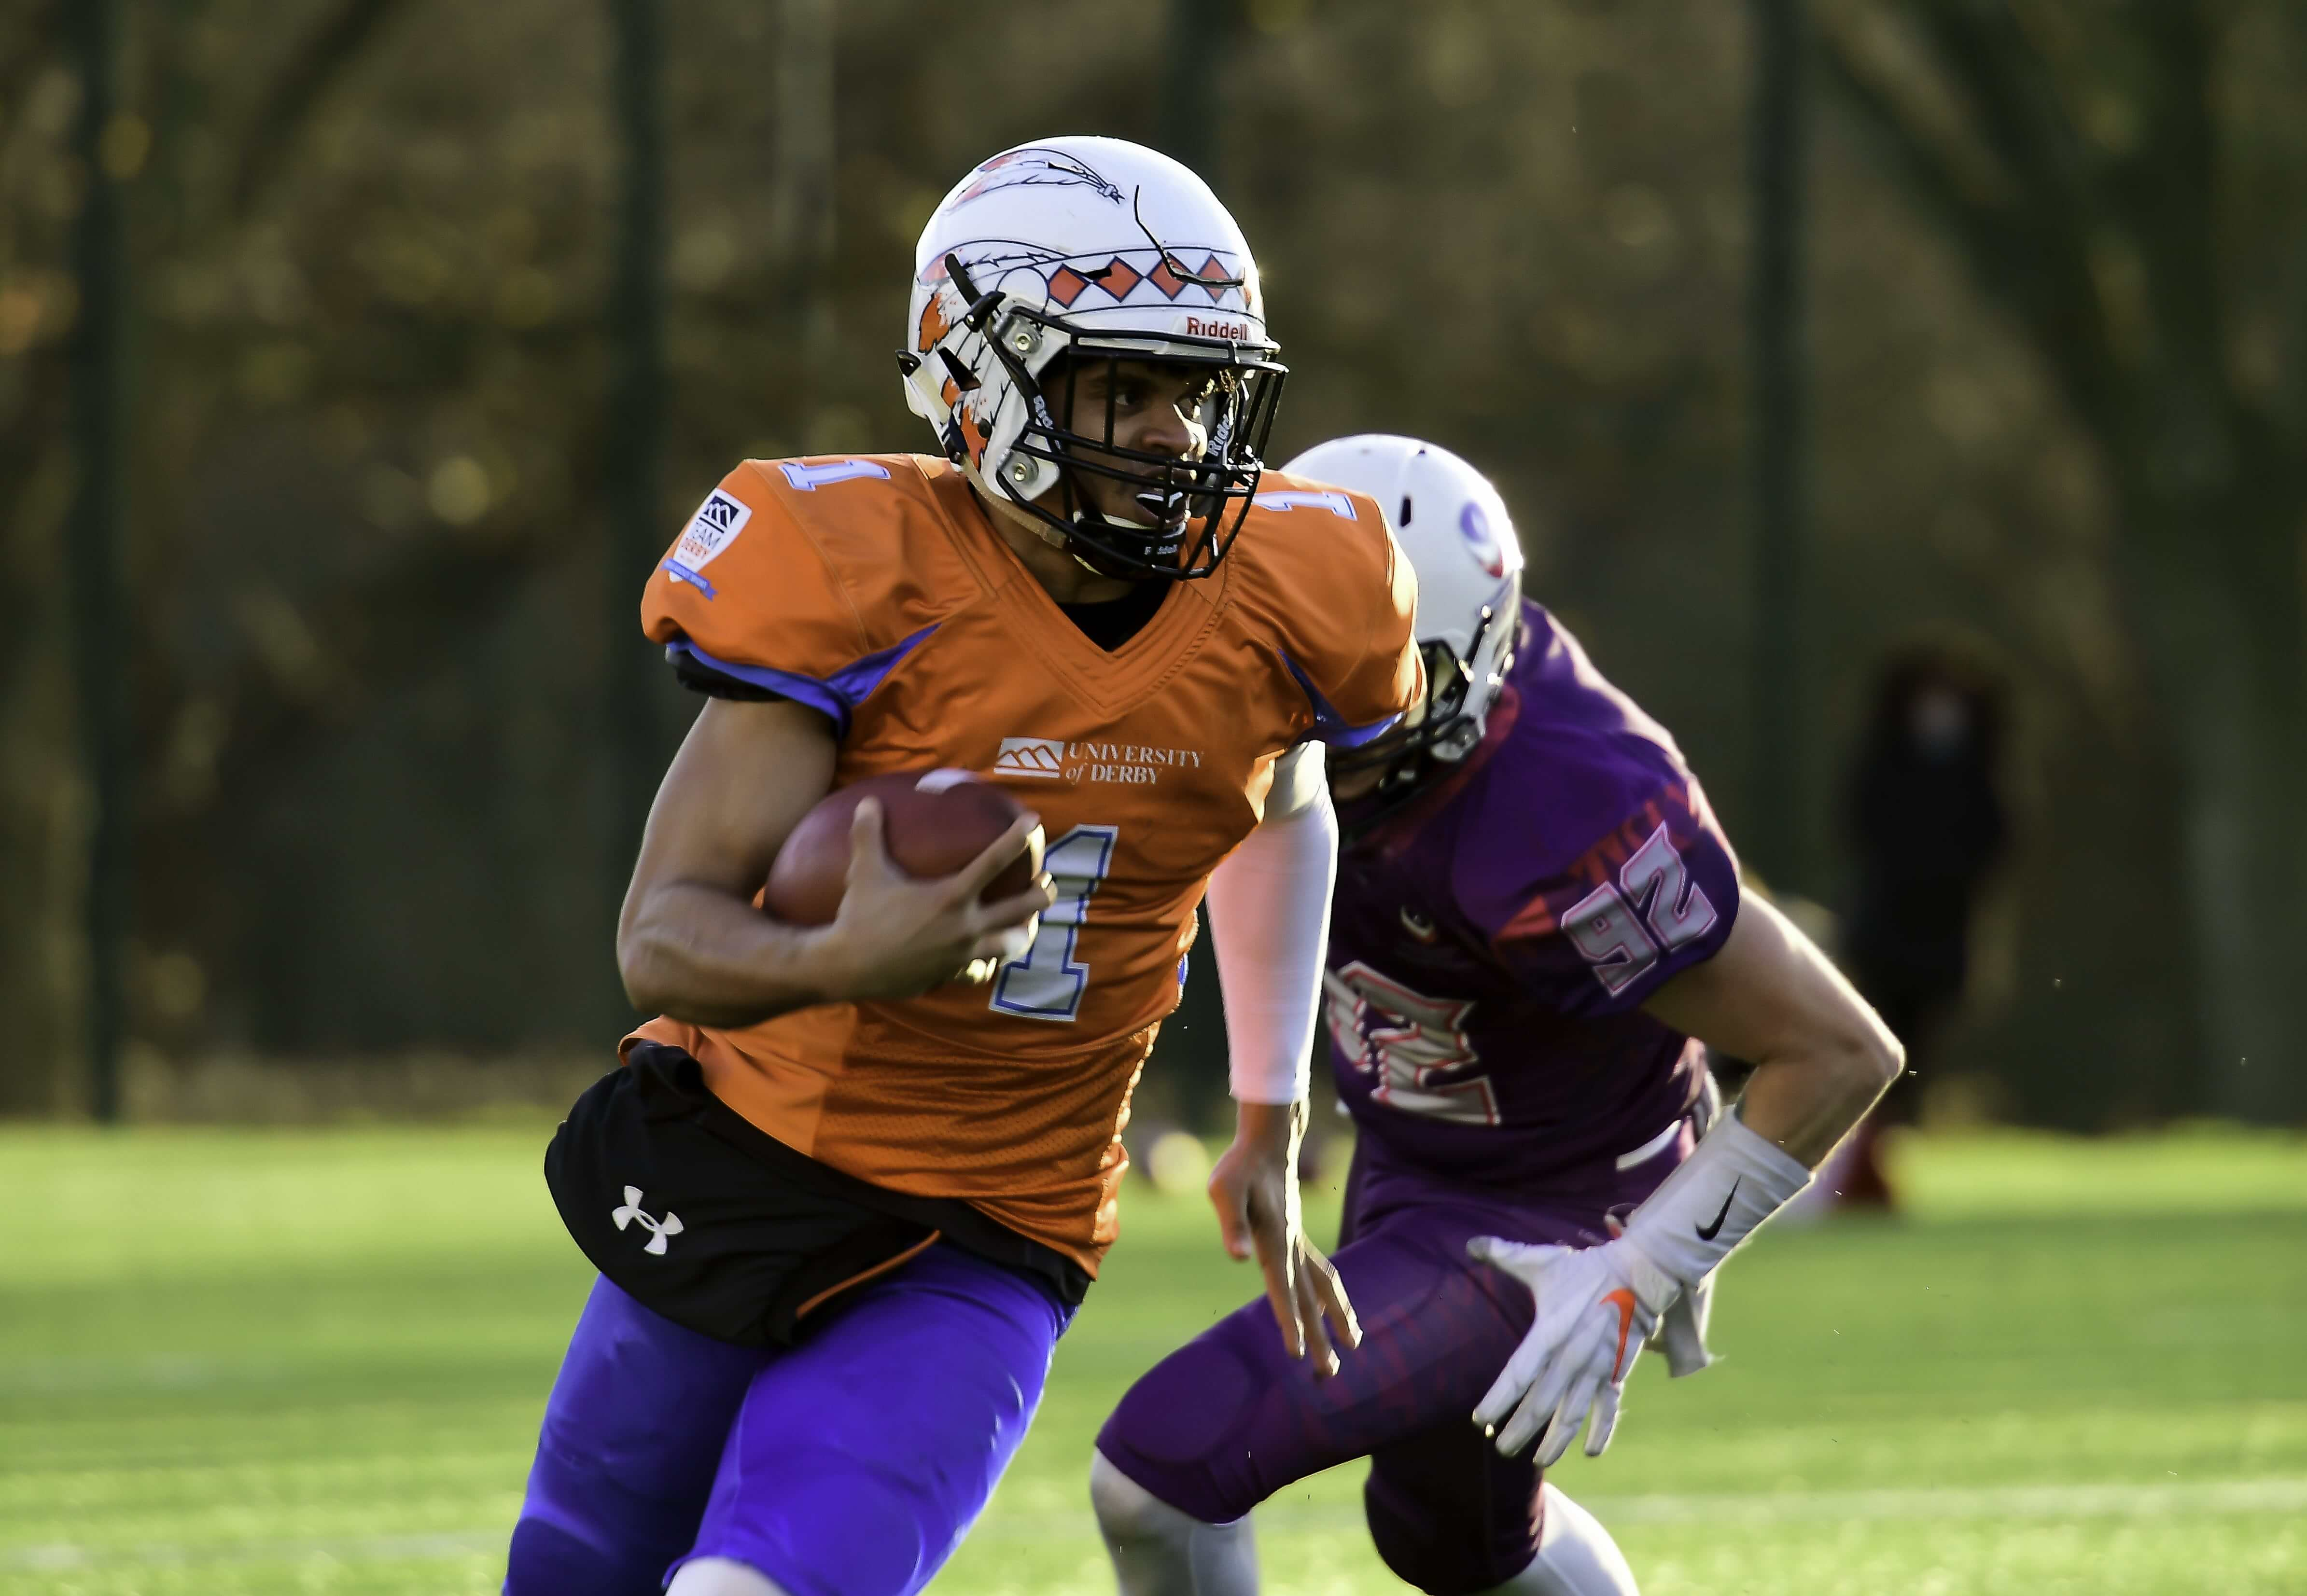 Clarence playing American Football - Derby vs Loughborough, December 2019